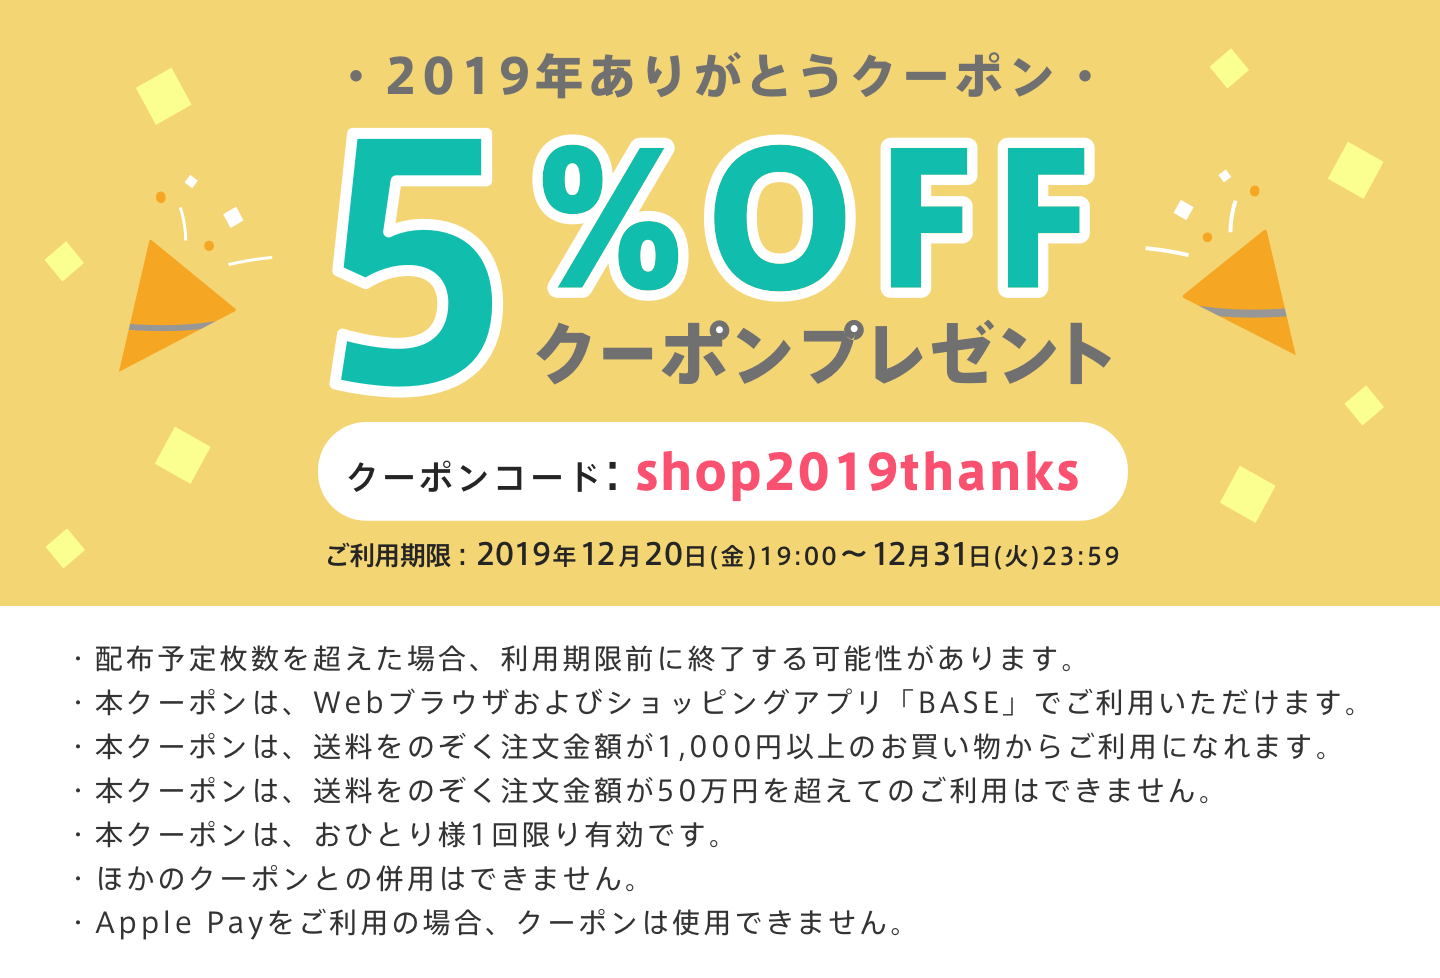 ALL 5% off! 2019年ありがとうクーポン